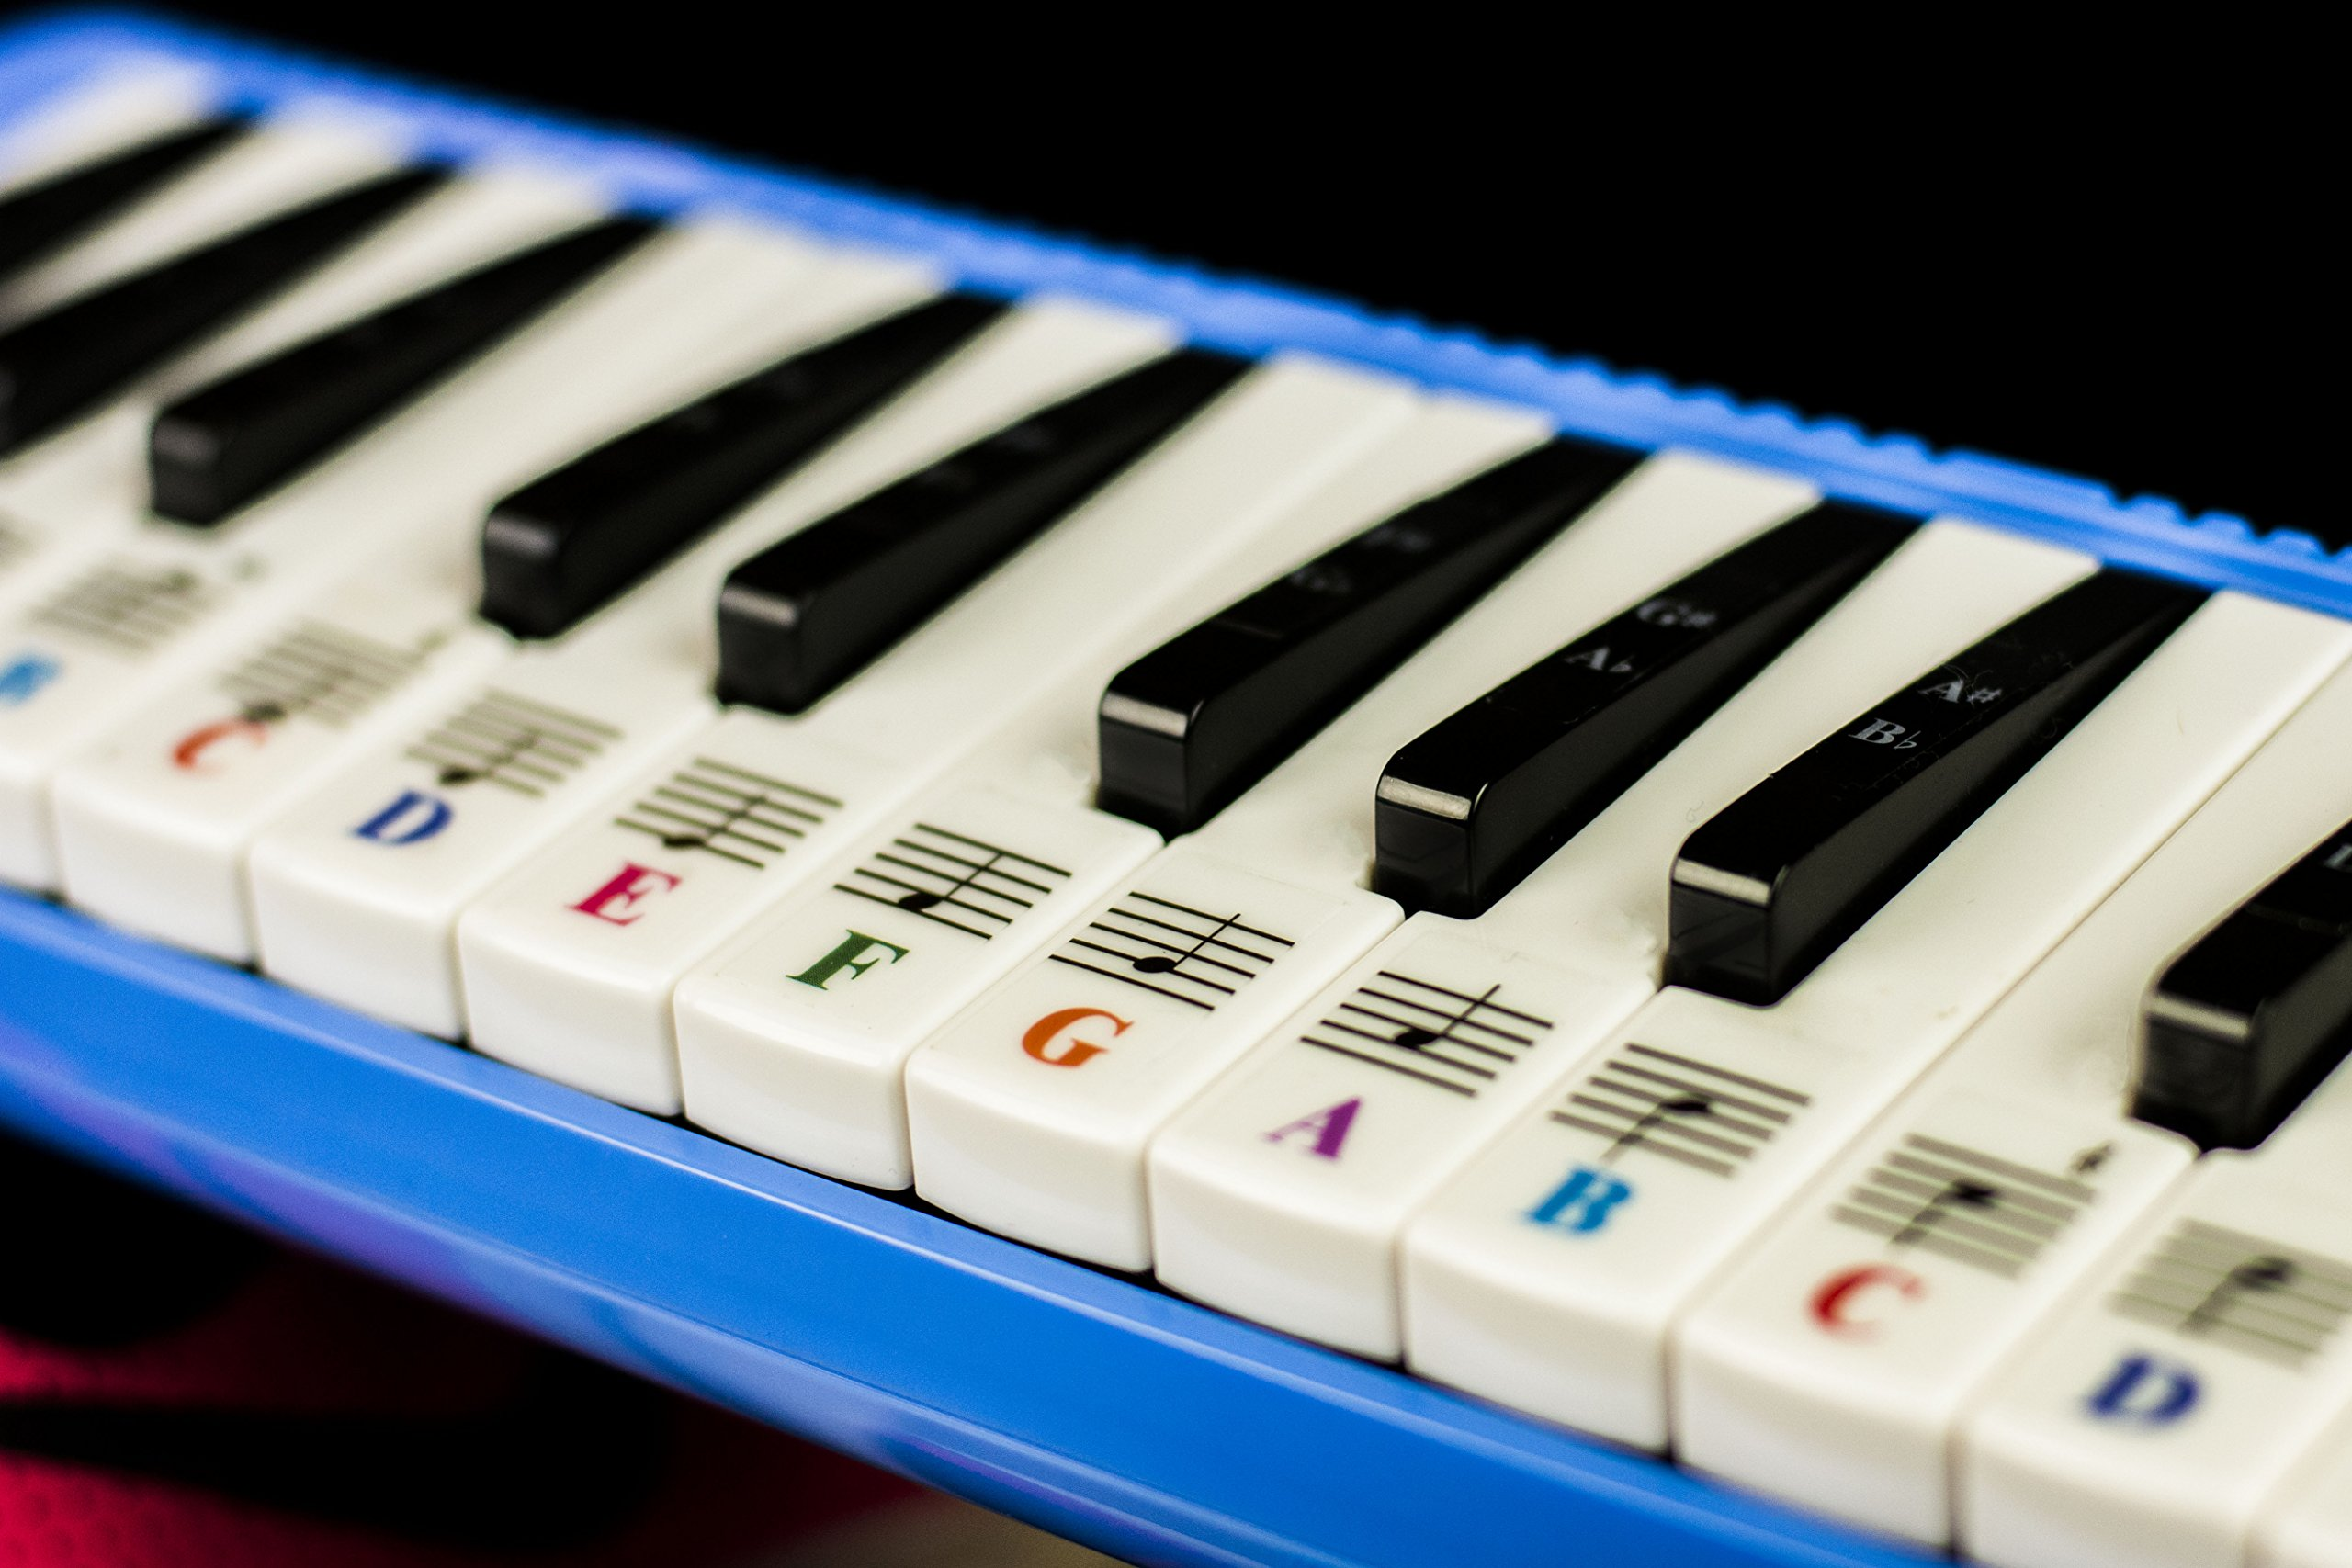 Melodica 32 Keys with Piano Stickers, Hard Cover Carrying Case, Mouthpiece, and Piano Ebook by QMG (Image #3)